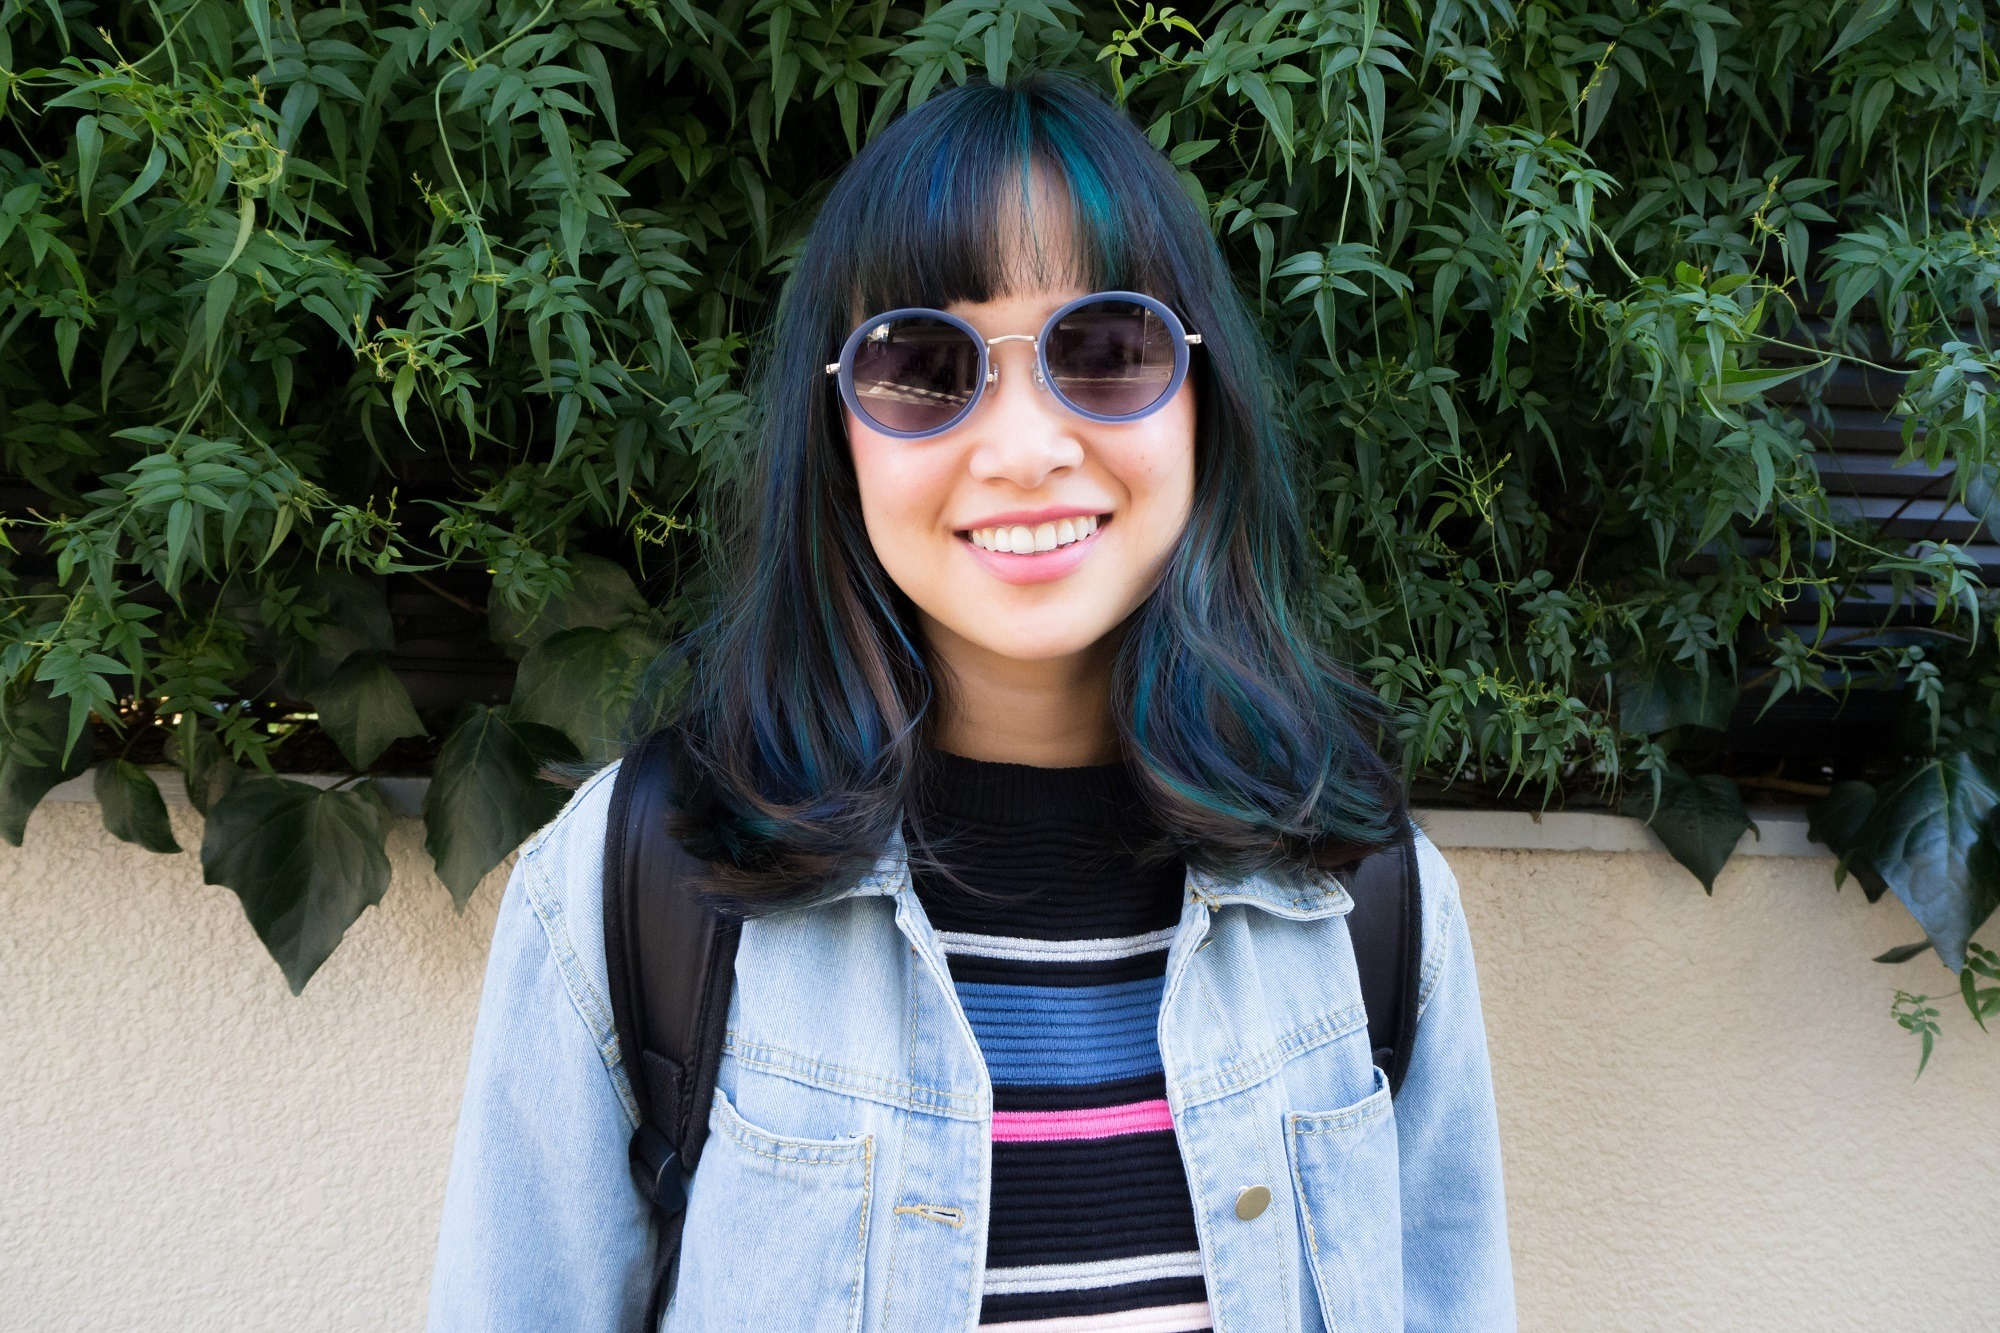 Girl with shoulder-length hair with bangs and green hair streaks wearing striped shirt and jacket and shades standing against a leafy backdrop in an outdoor location